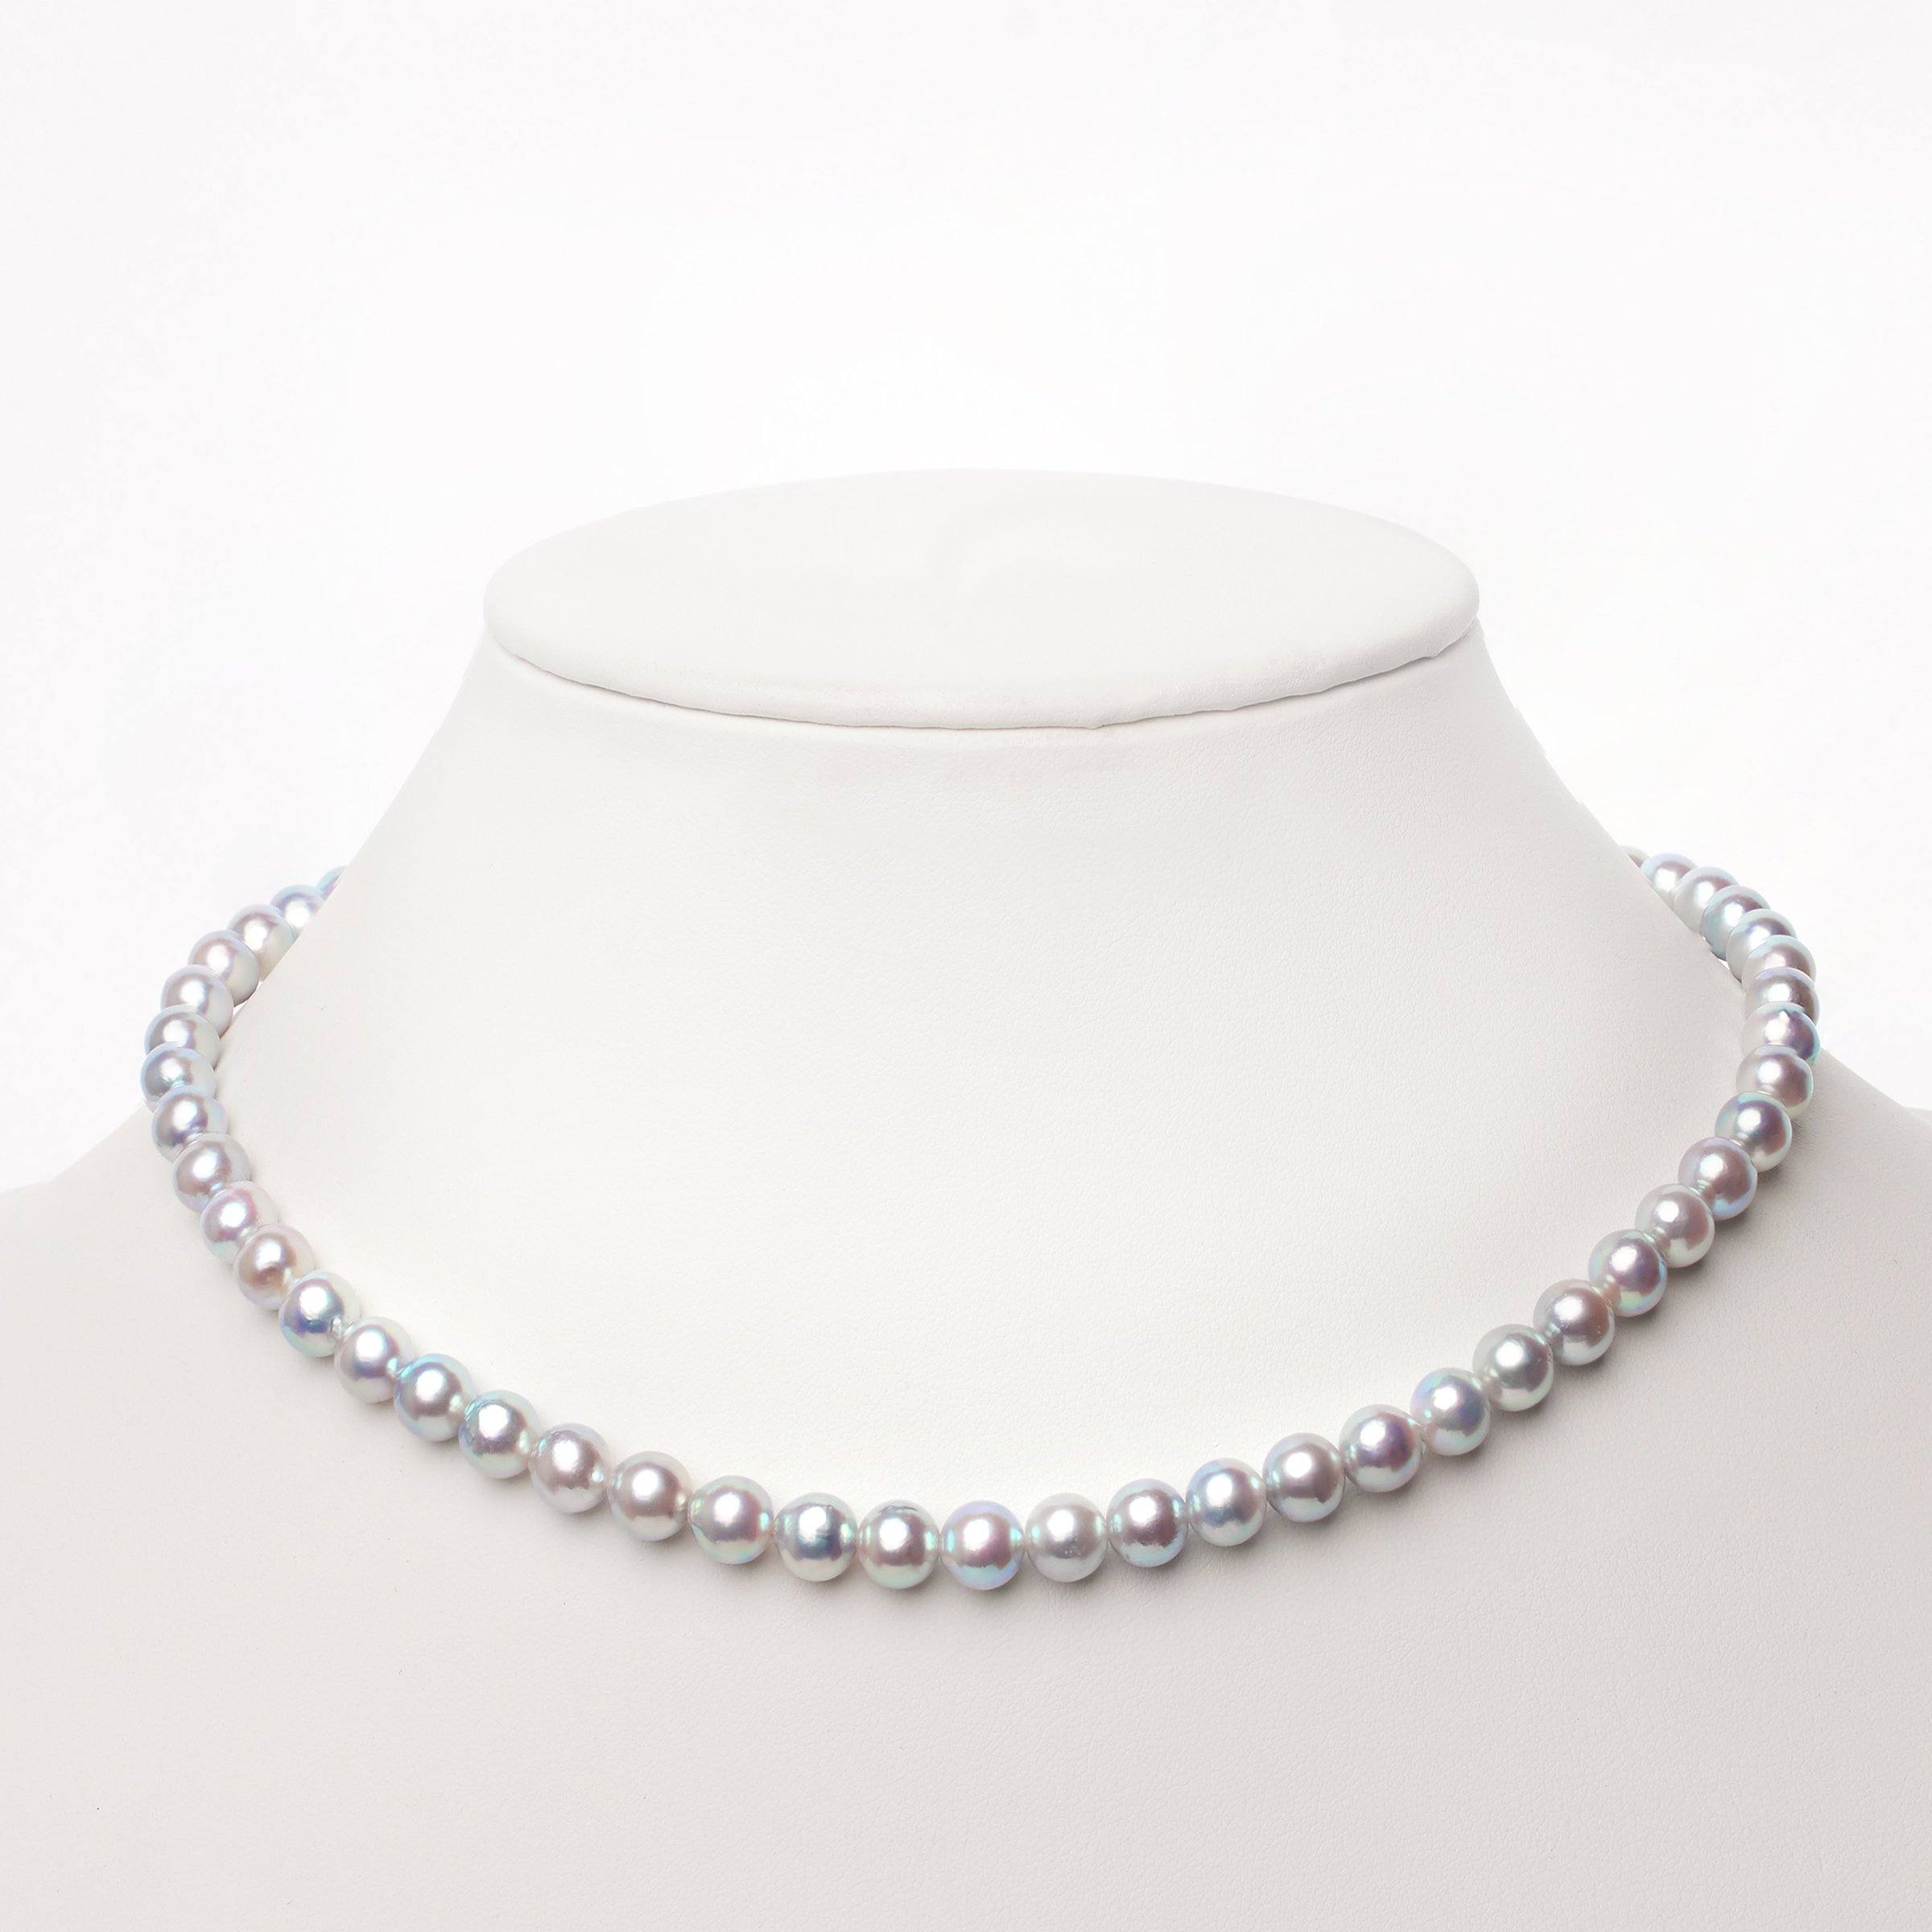 6.5-7.0 mm Semi-Round Silver Blue Akoya Necklace